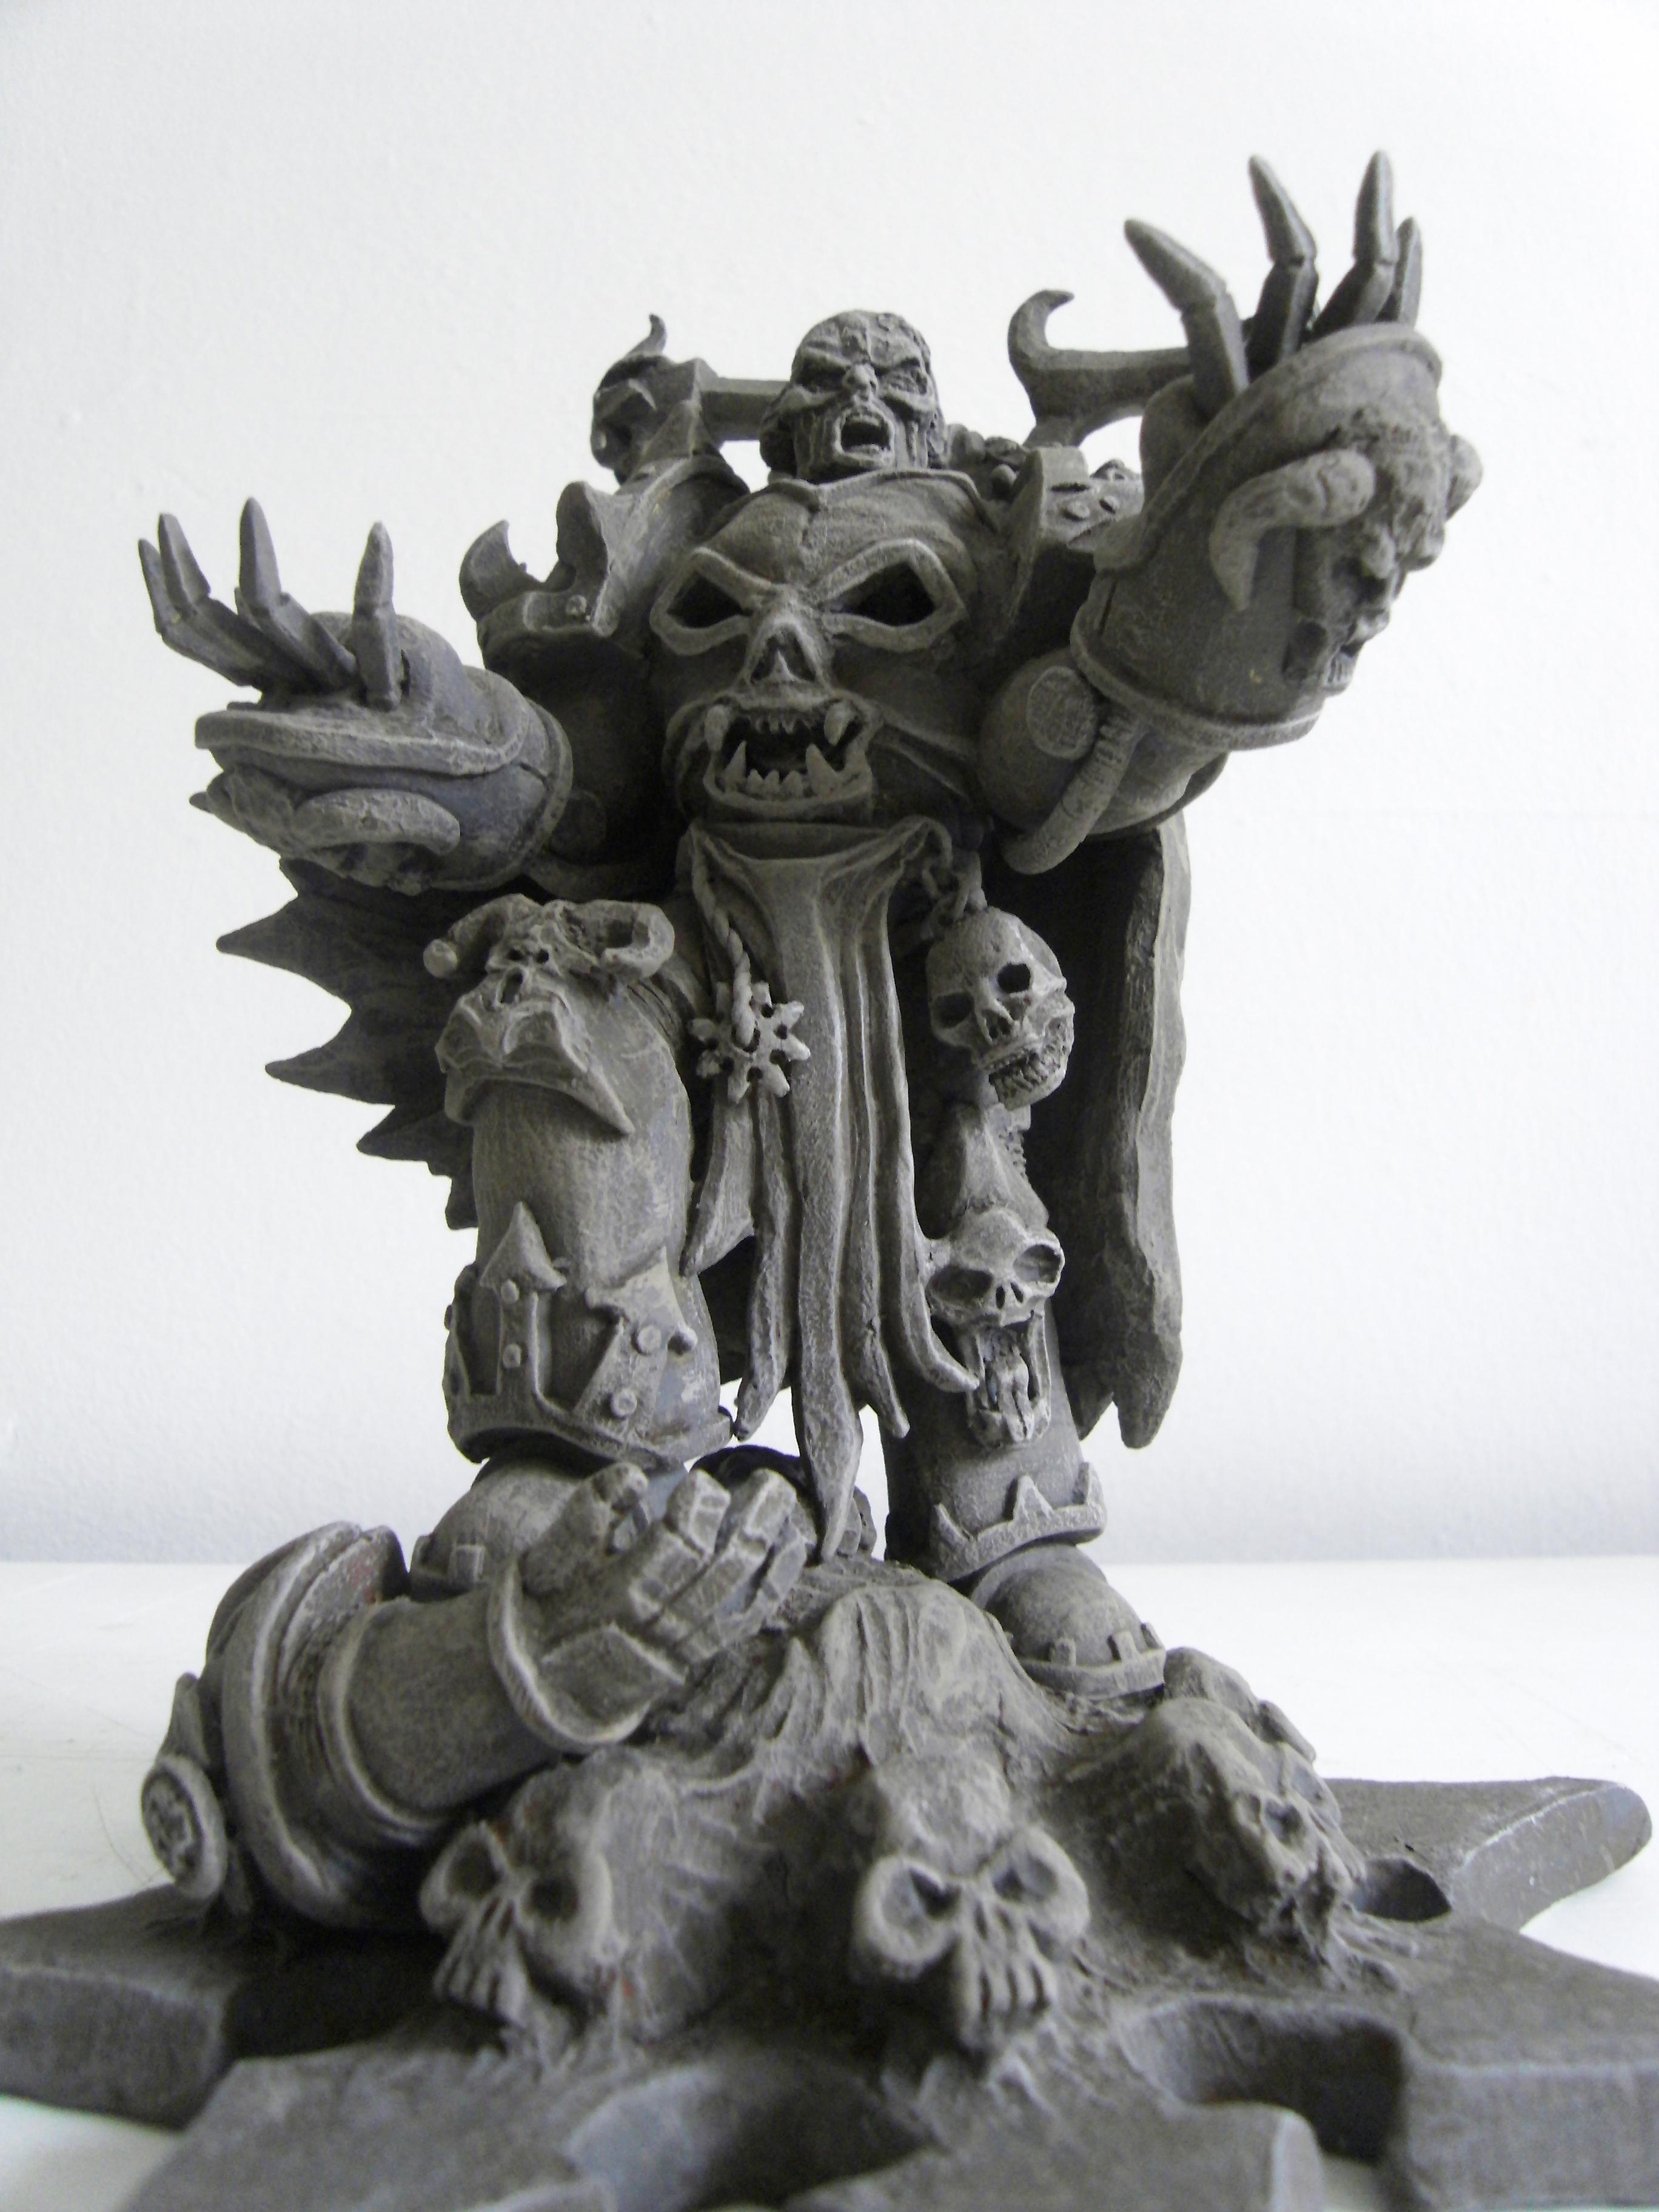 Chaos, Chaos Lord, Chaos Space Marines, Commission Work, Custom, Large, Large Scale, Monument, Scratch Build, Sculpting, Sculpture, Space Marines, Statue, Terrain, Warhammer 40,000, Warhammer Fantasy